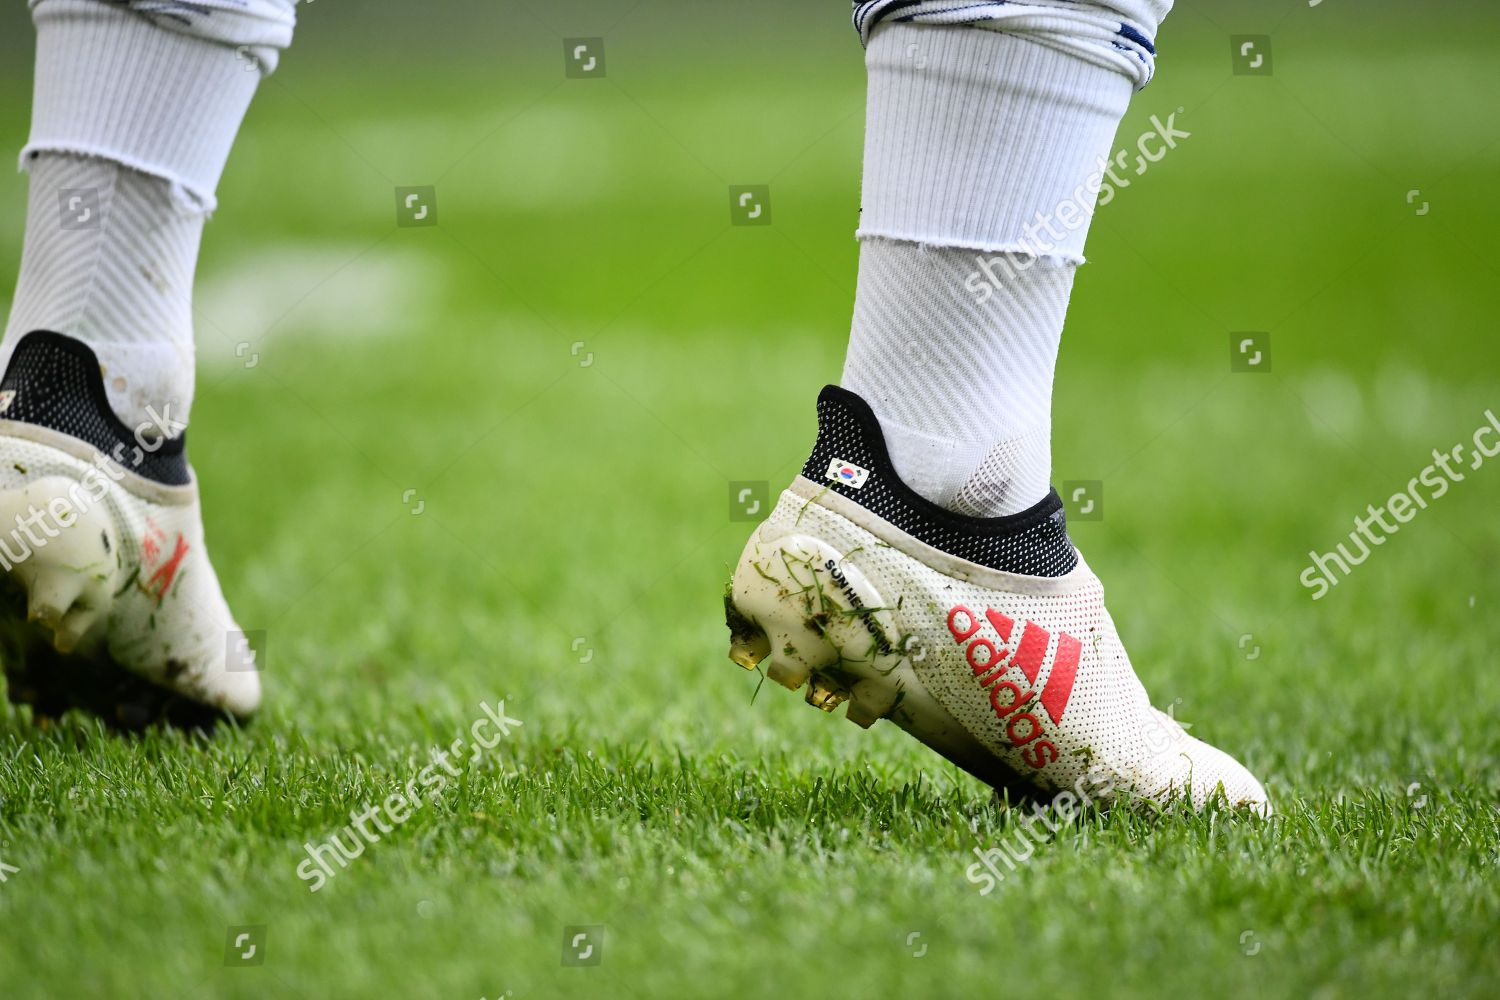 Personalized Adidas football boots